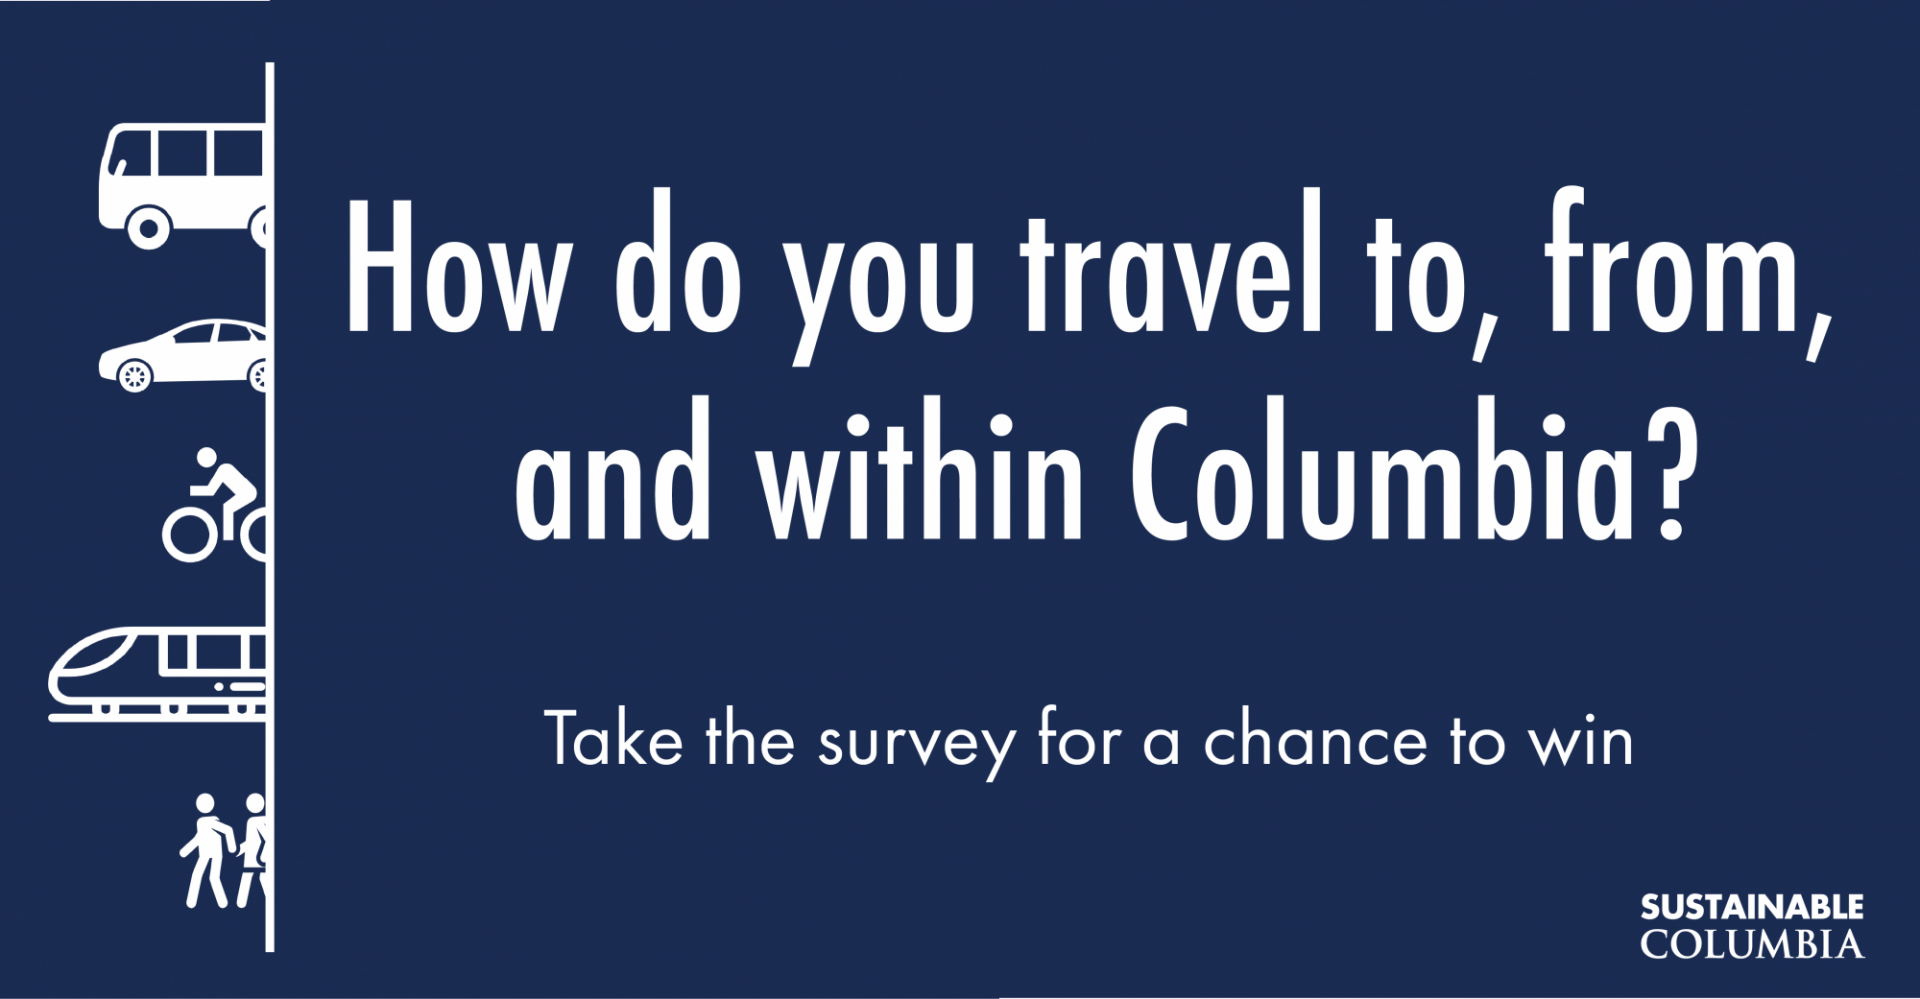 How do you travel to, from, and within Columbia?